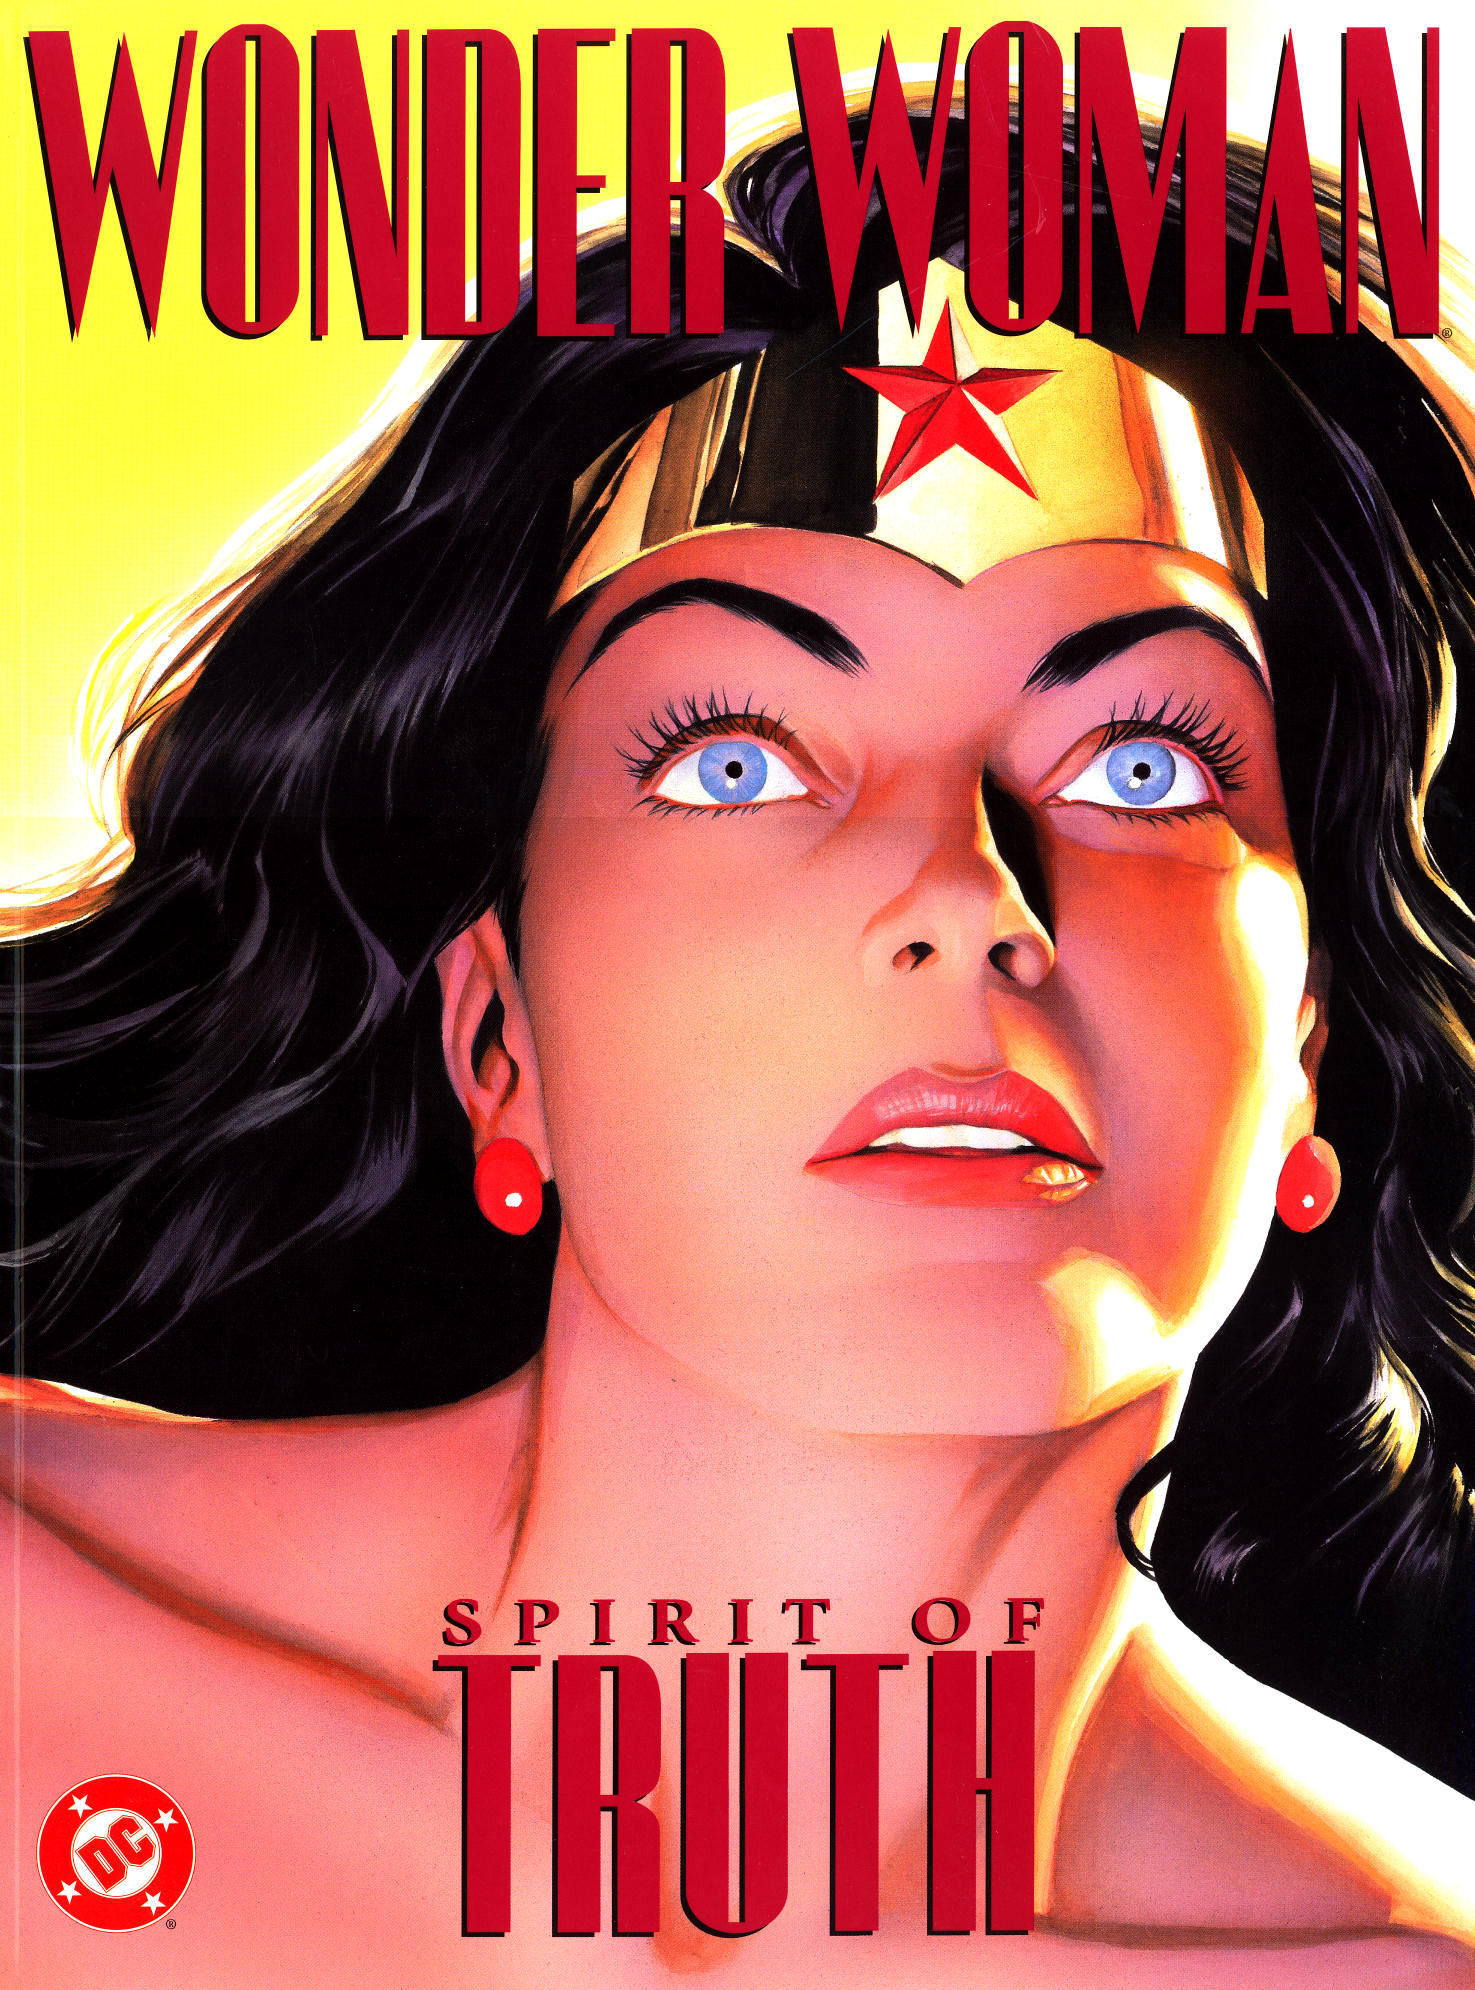 Wonder Woman: Spirit Of Truth (2001) #1, cover by Alex Ross.